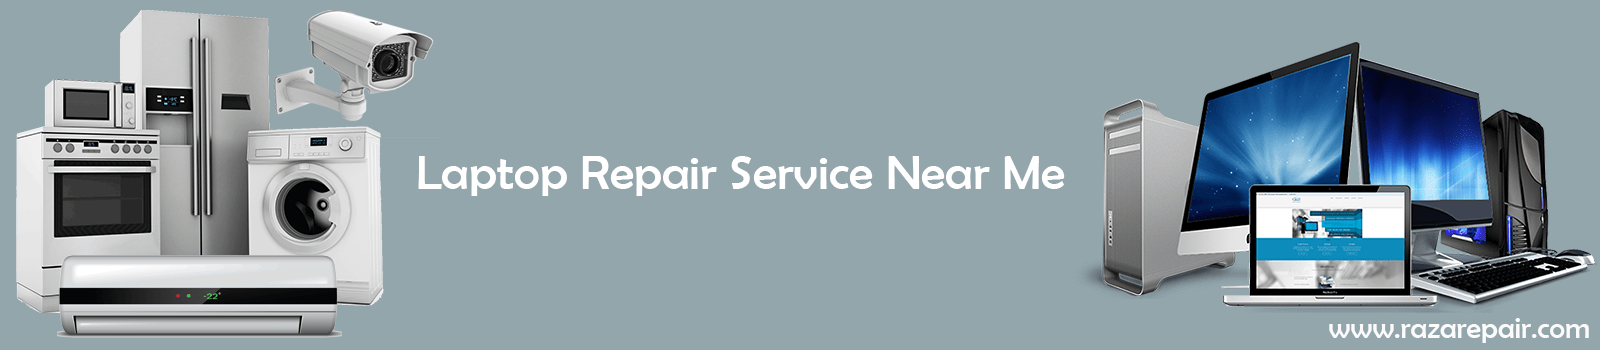 Laptop Repair Service Near Me | Call Now 8655112626